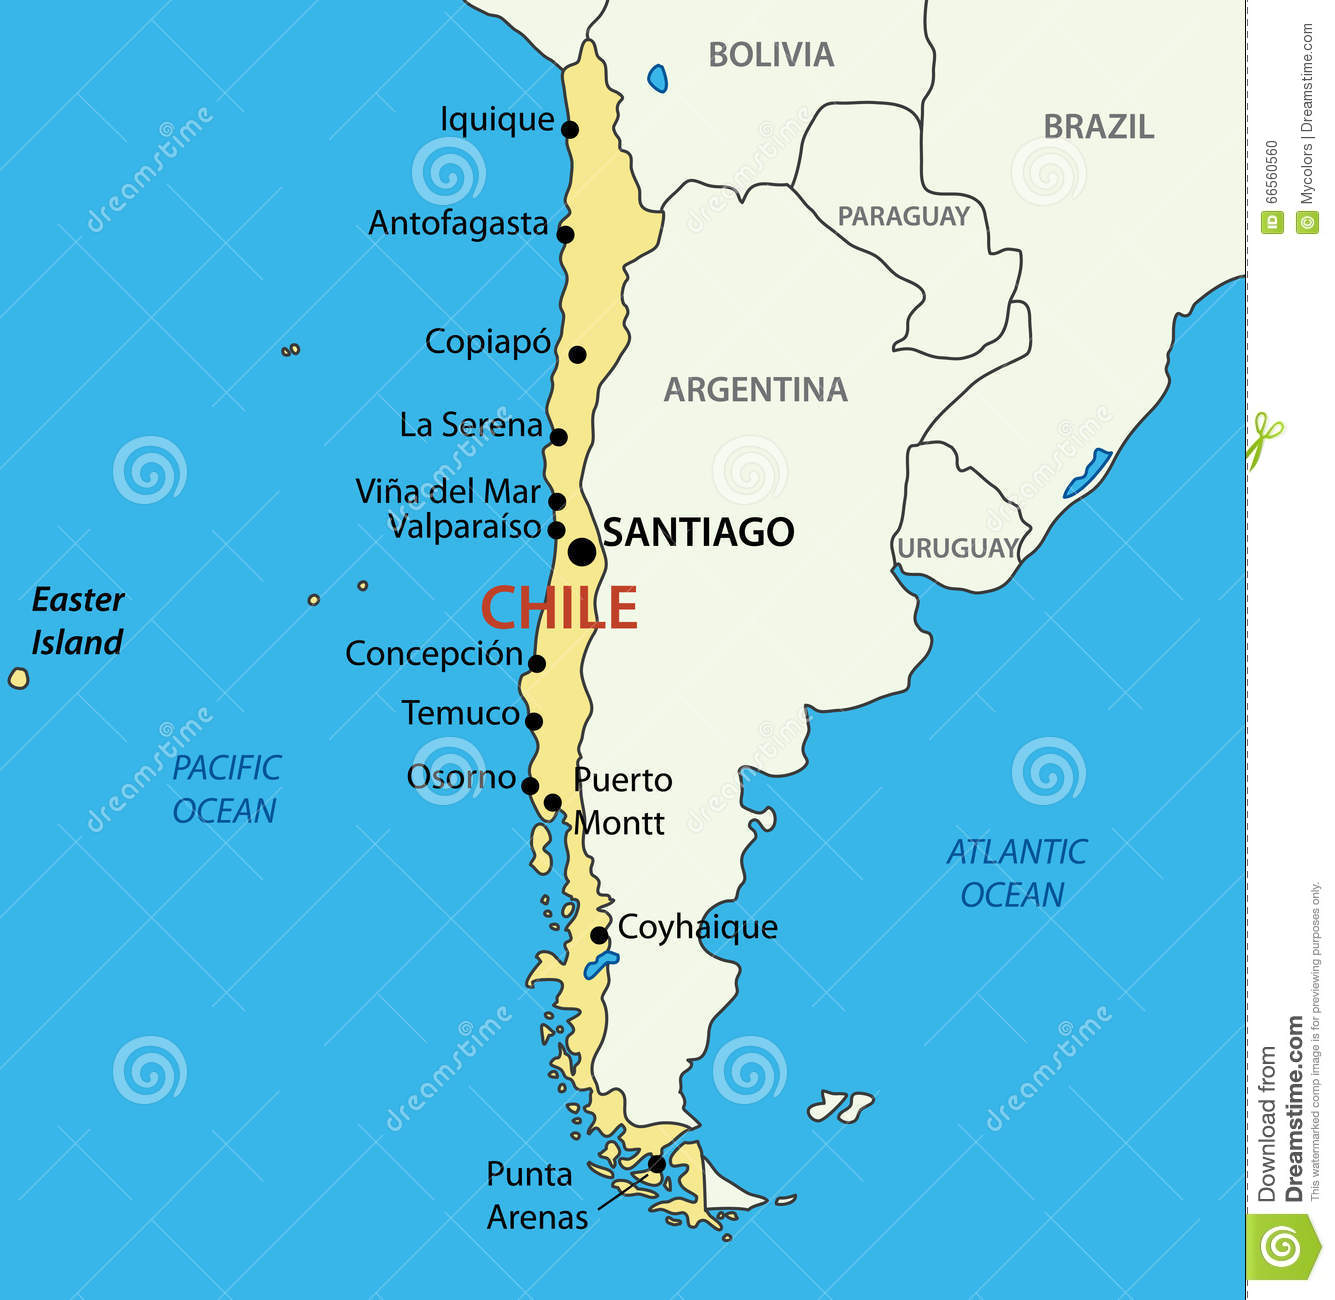 Chile Vector Map Stock Illustrations 2 511 Chile Vector Map Stock Illustrations Vectors Clipart Dreamstime